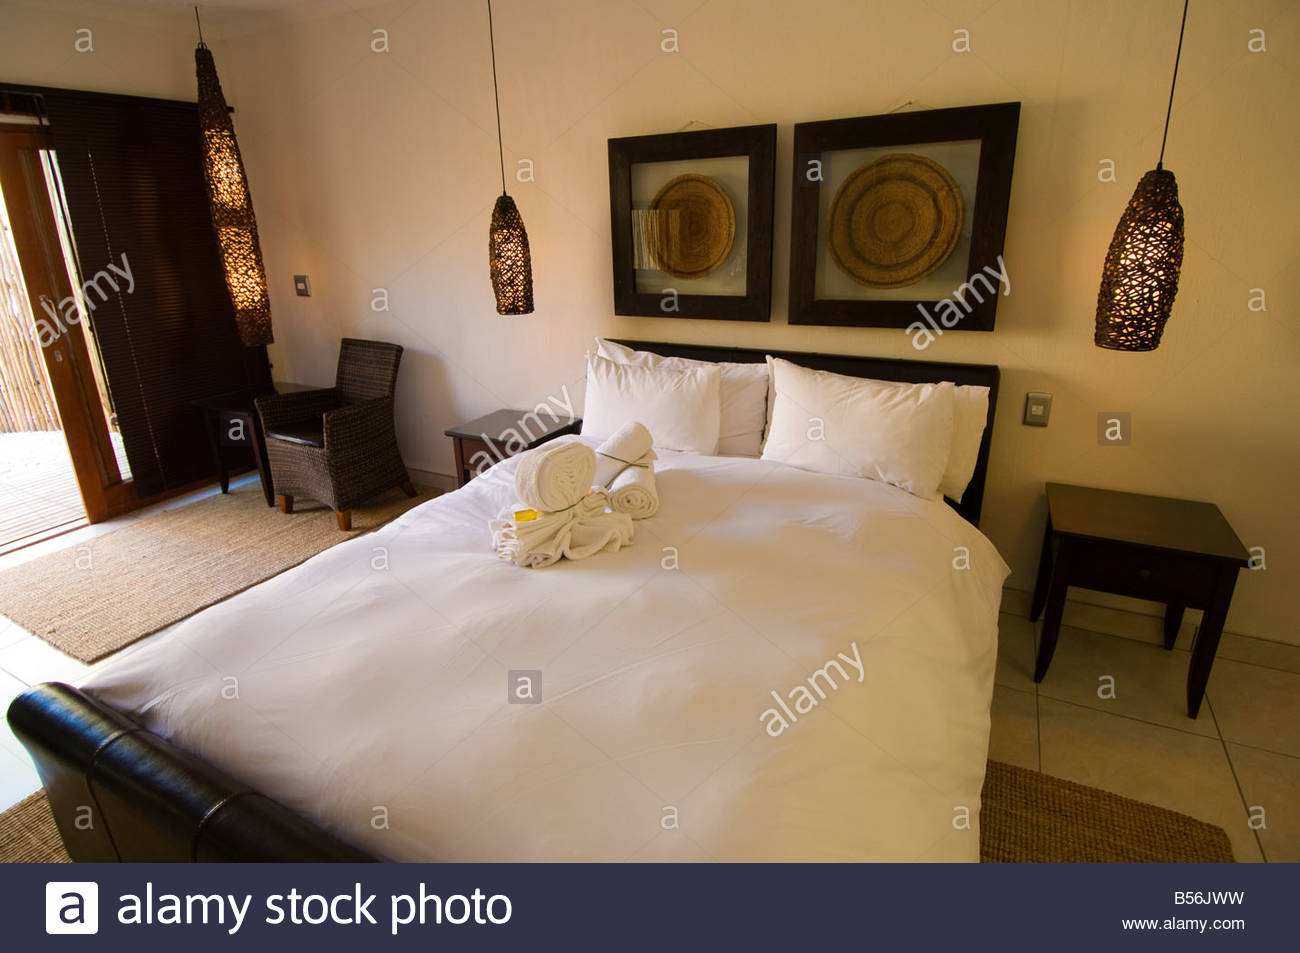 Interior view of a bedroom in the Namutoni Resort Etosha National Park Namibia - Stock Image